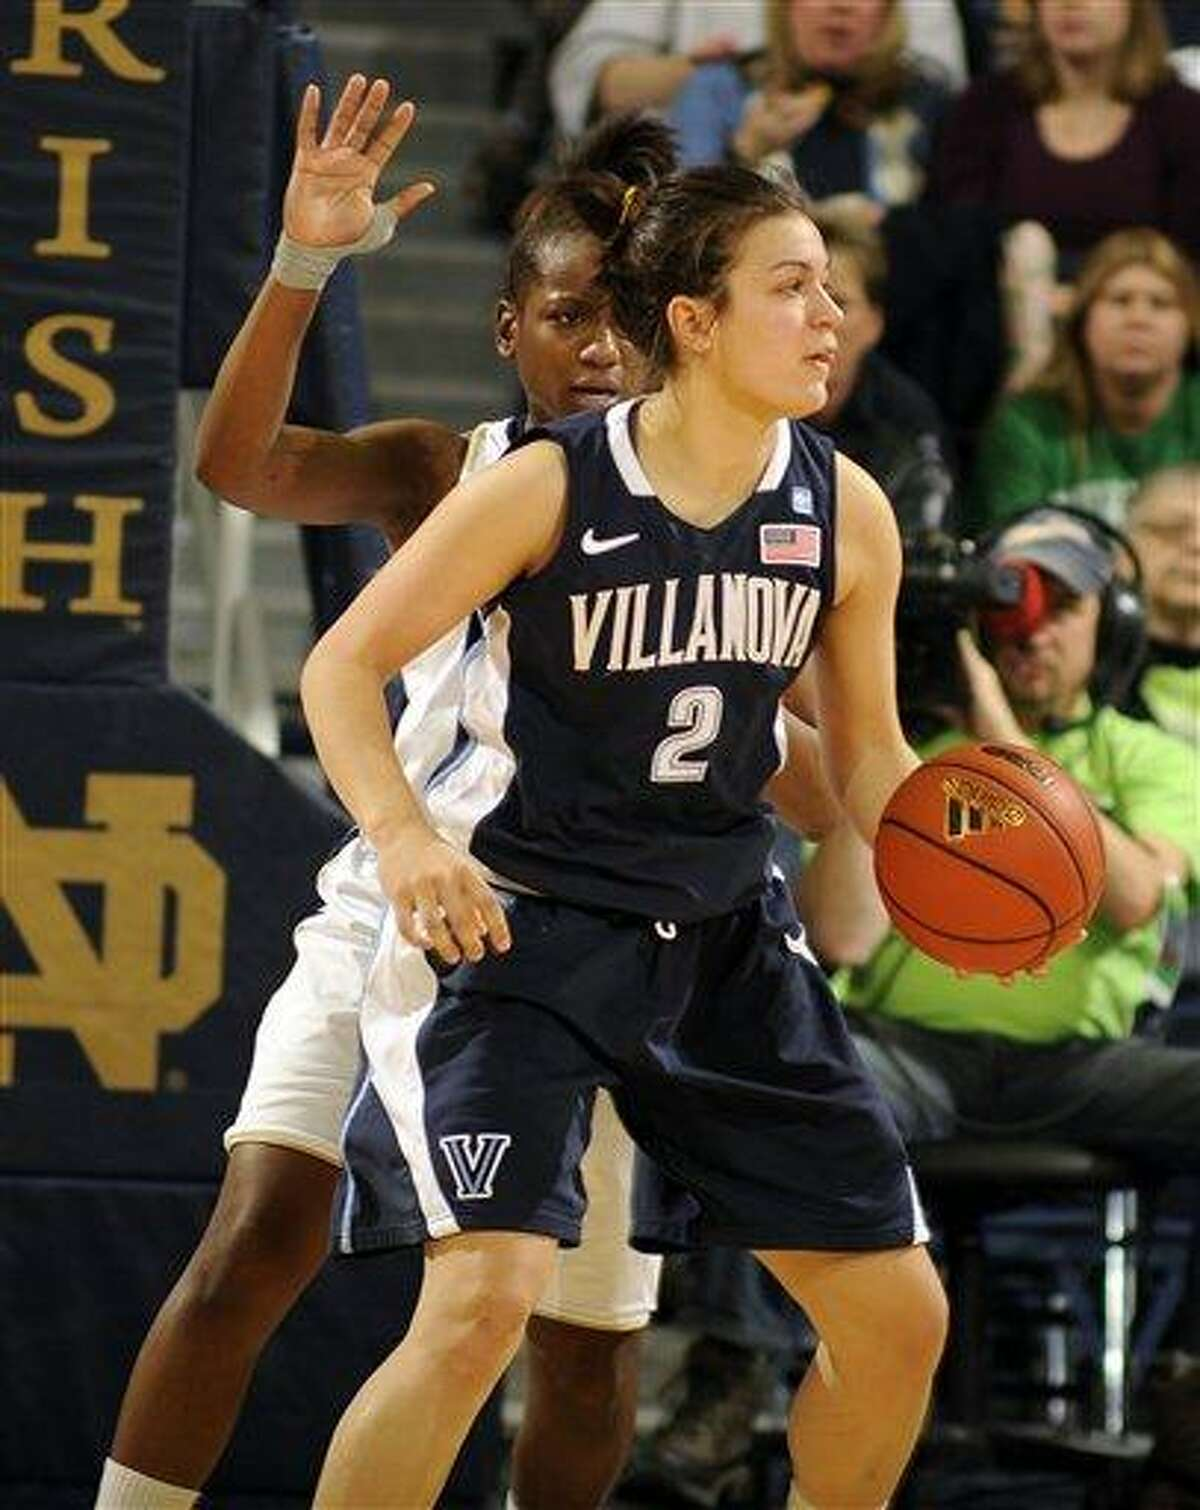 Villanova guard Rachel Roberts, right, works the ball against Notre Dame's Kaila Turner defends during the second half of an NCAA college basketball game, Saturday, Jan. 21, 2012, in South Bend, Ind. Notre Dame won 76-43 (AP Photo/Joe Raymond)